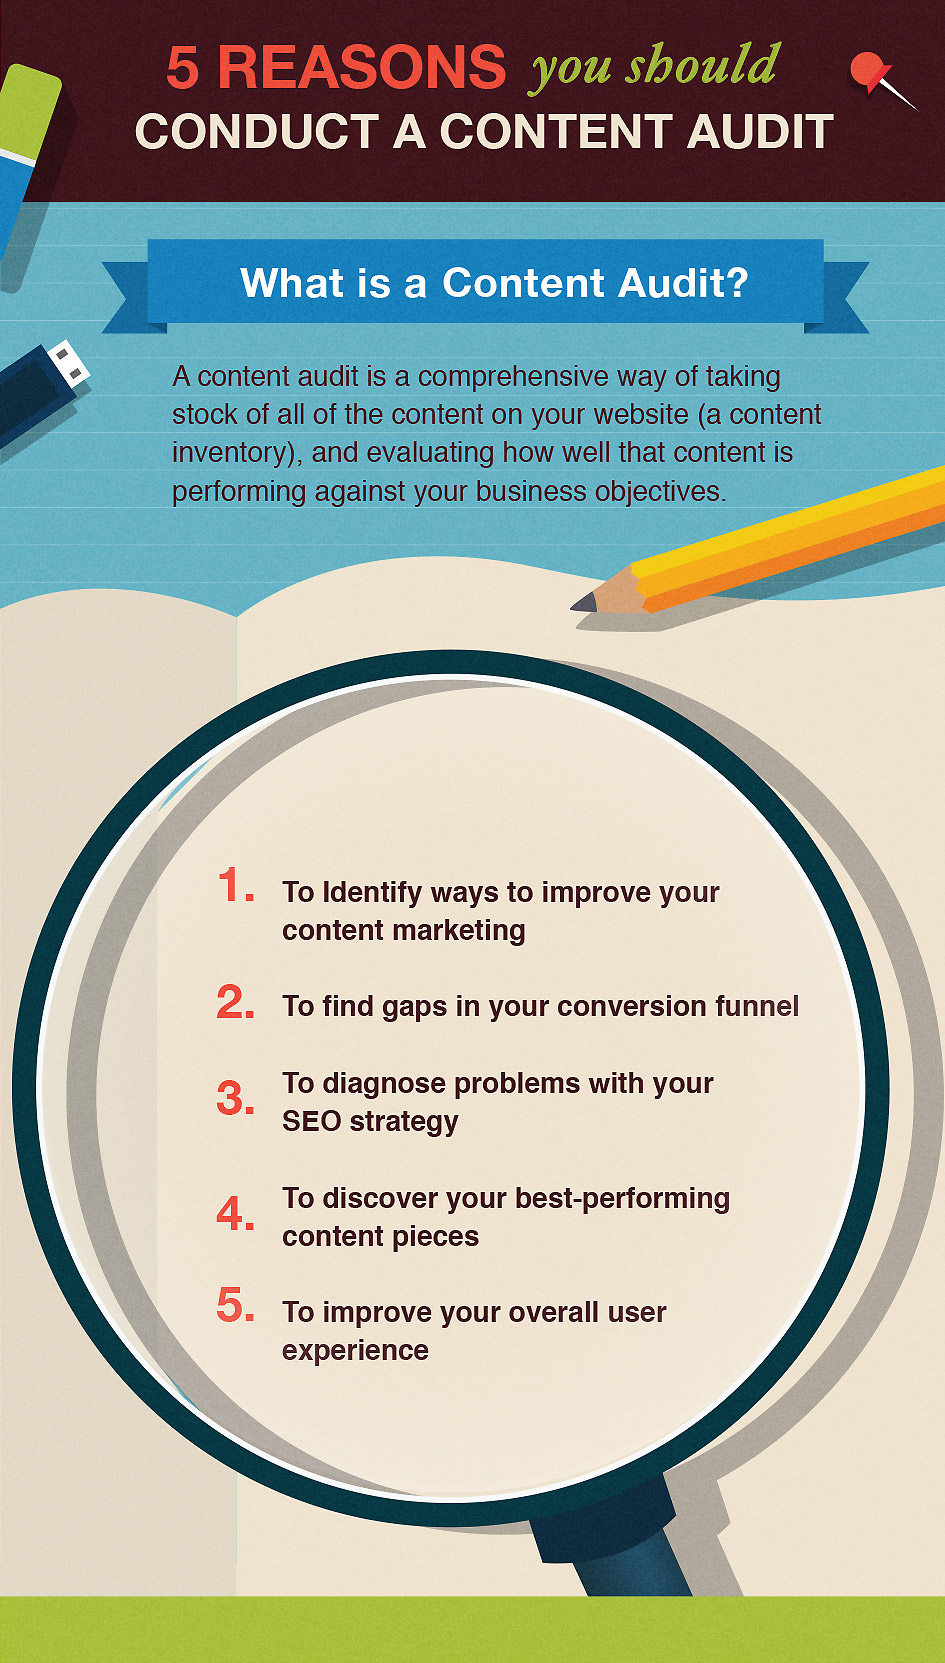 5 Reasons You Should Conduct a Content Audit